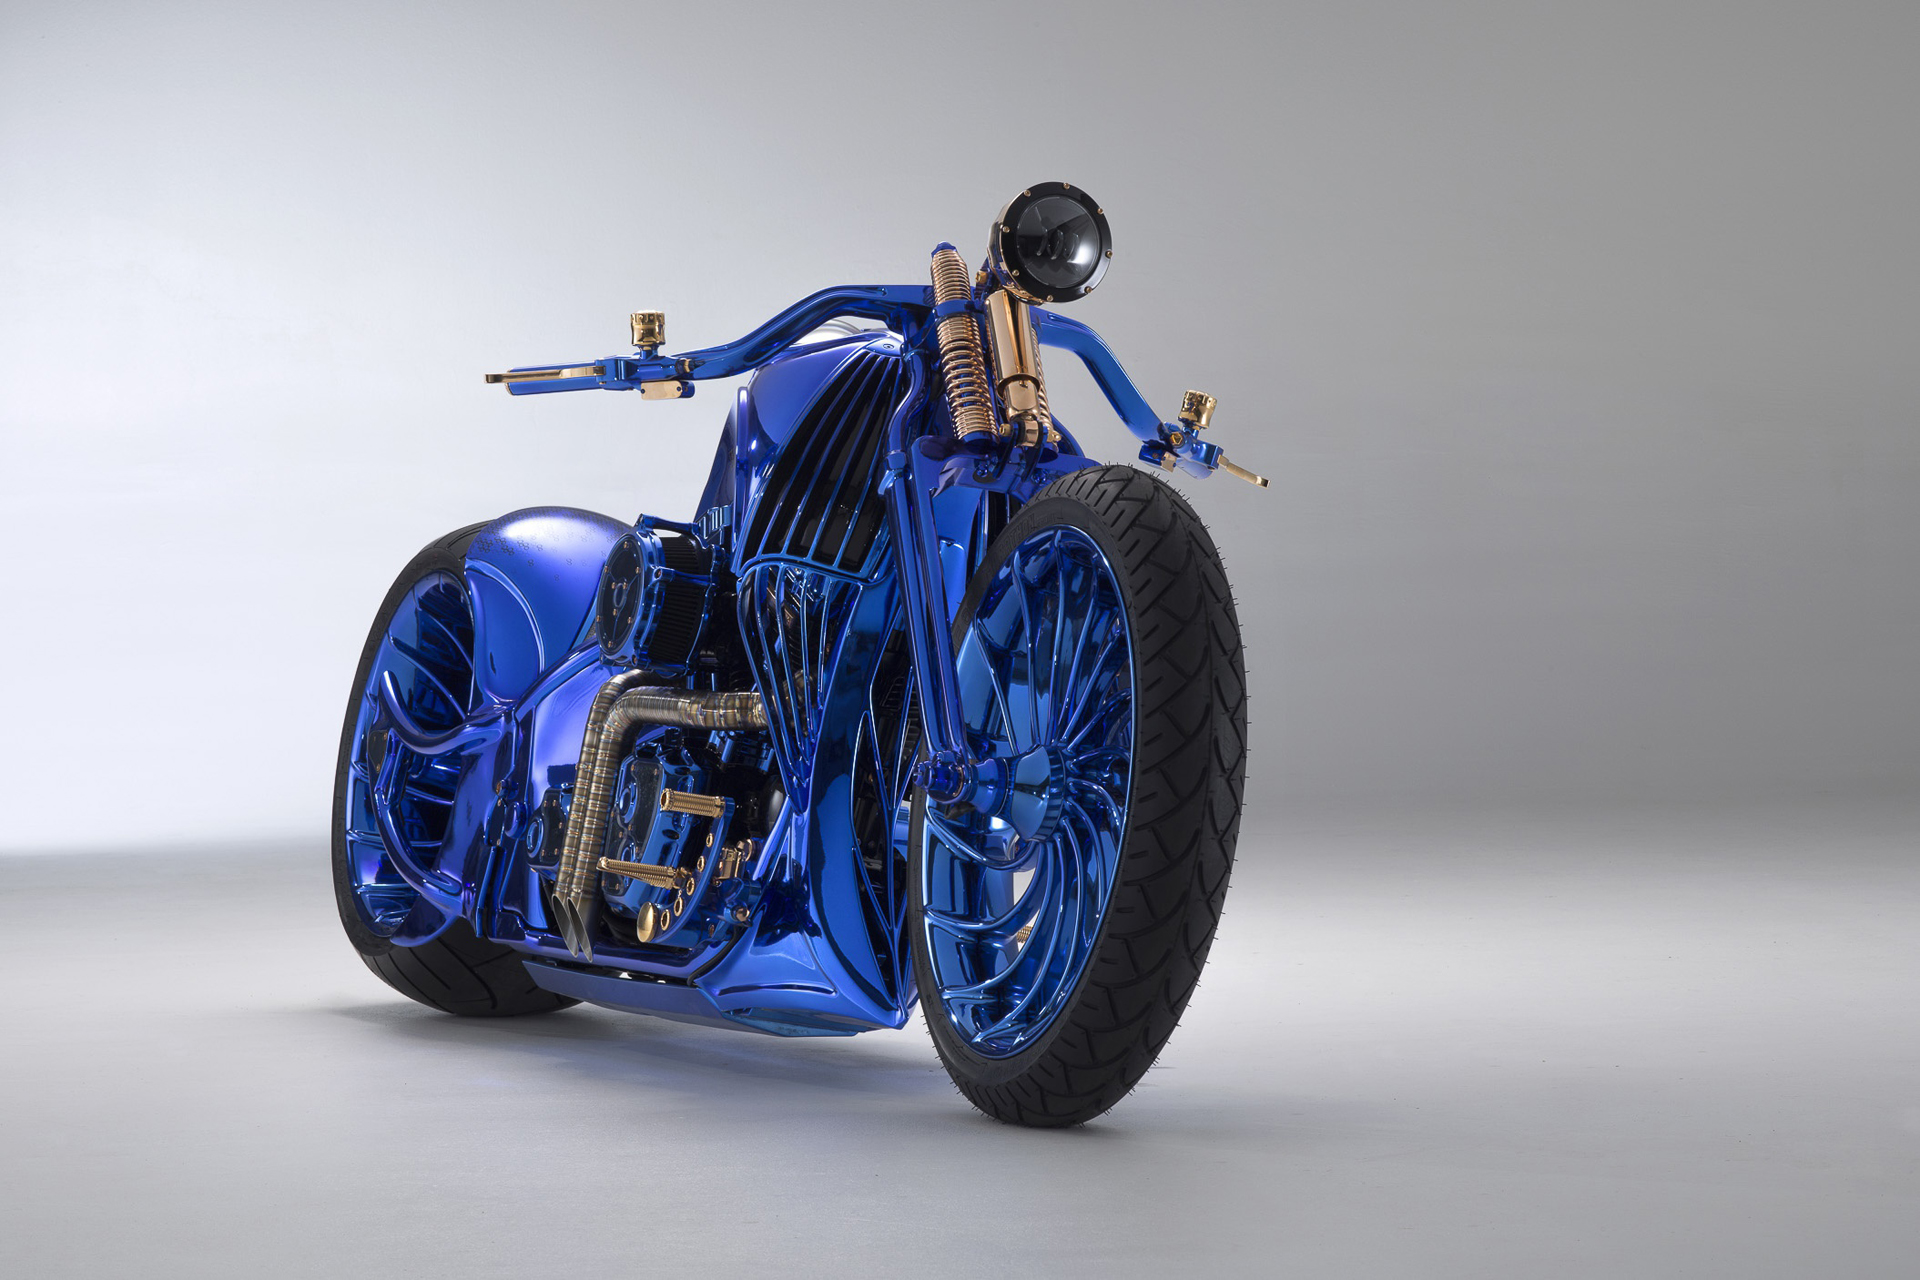 Harley-Davidson Bucherer Blue Edition: the most expensive bike in the world!